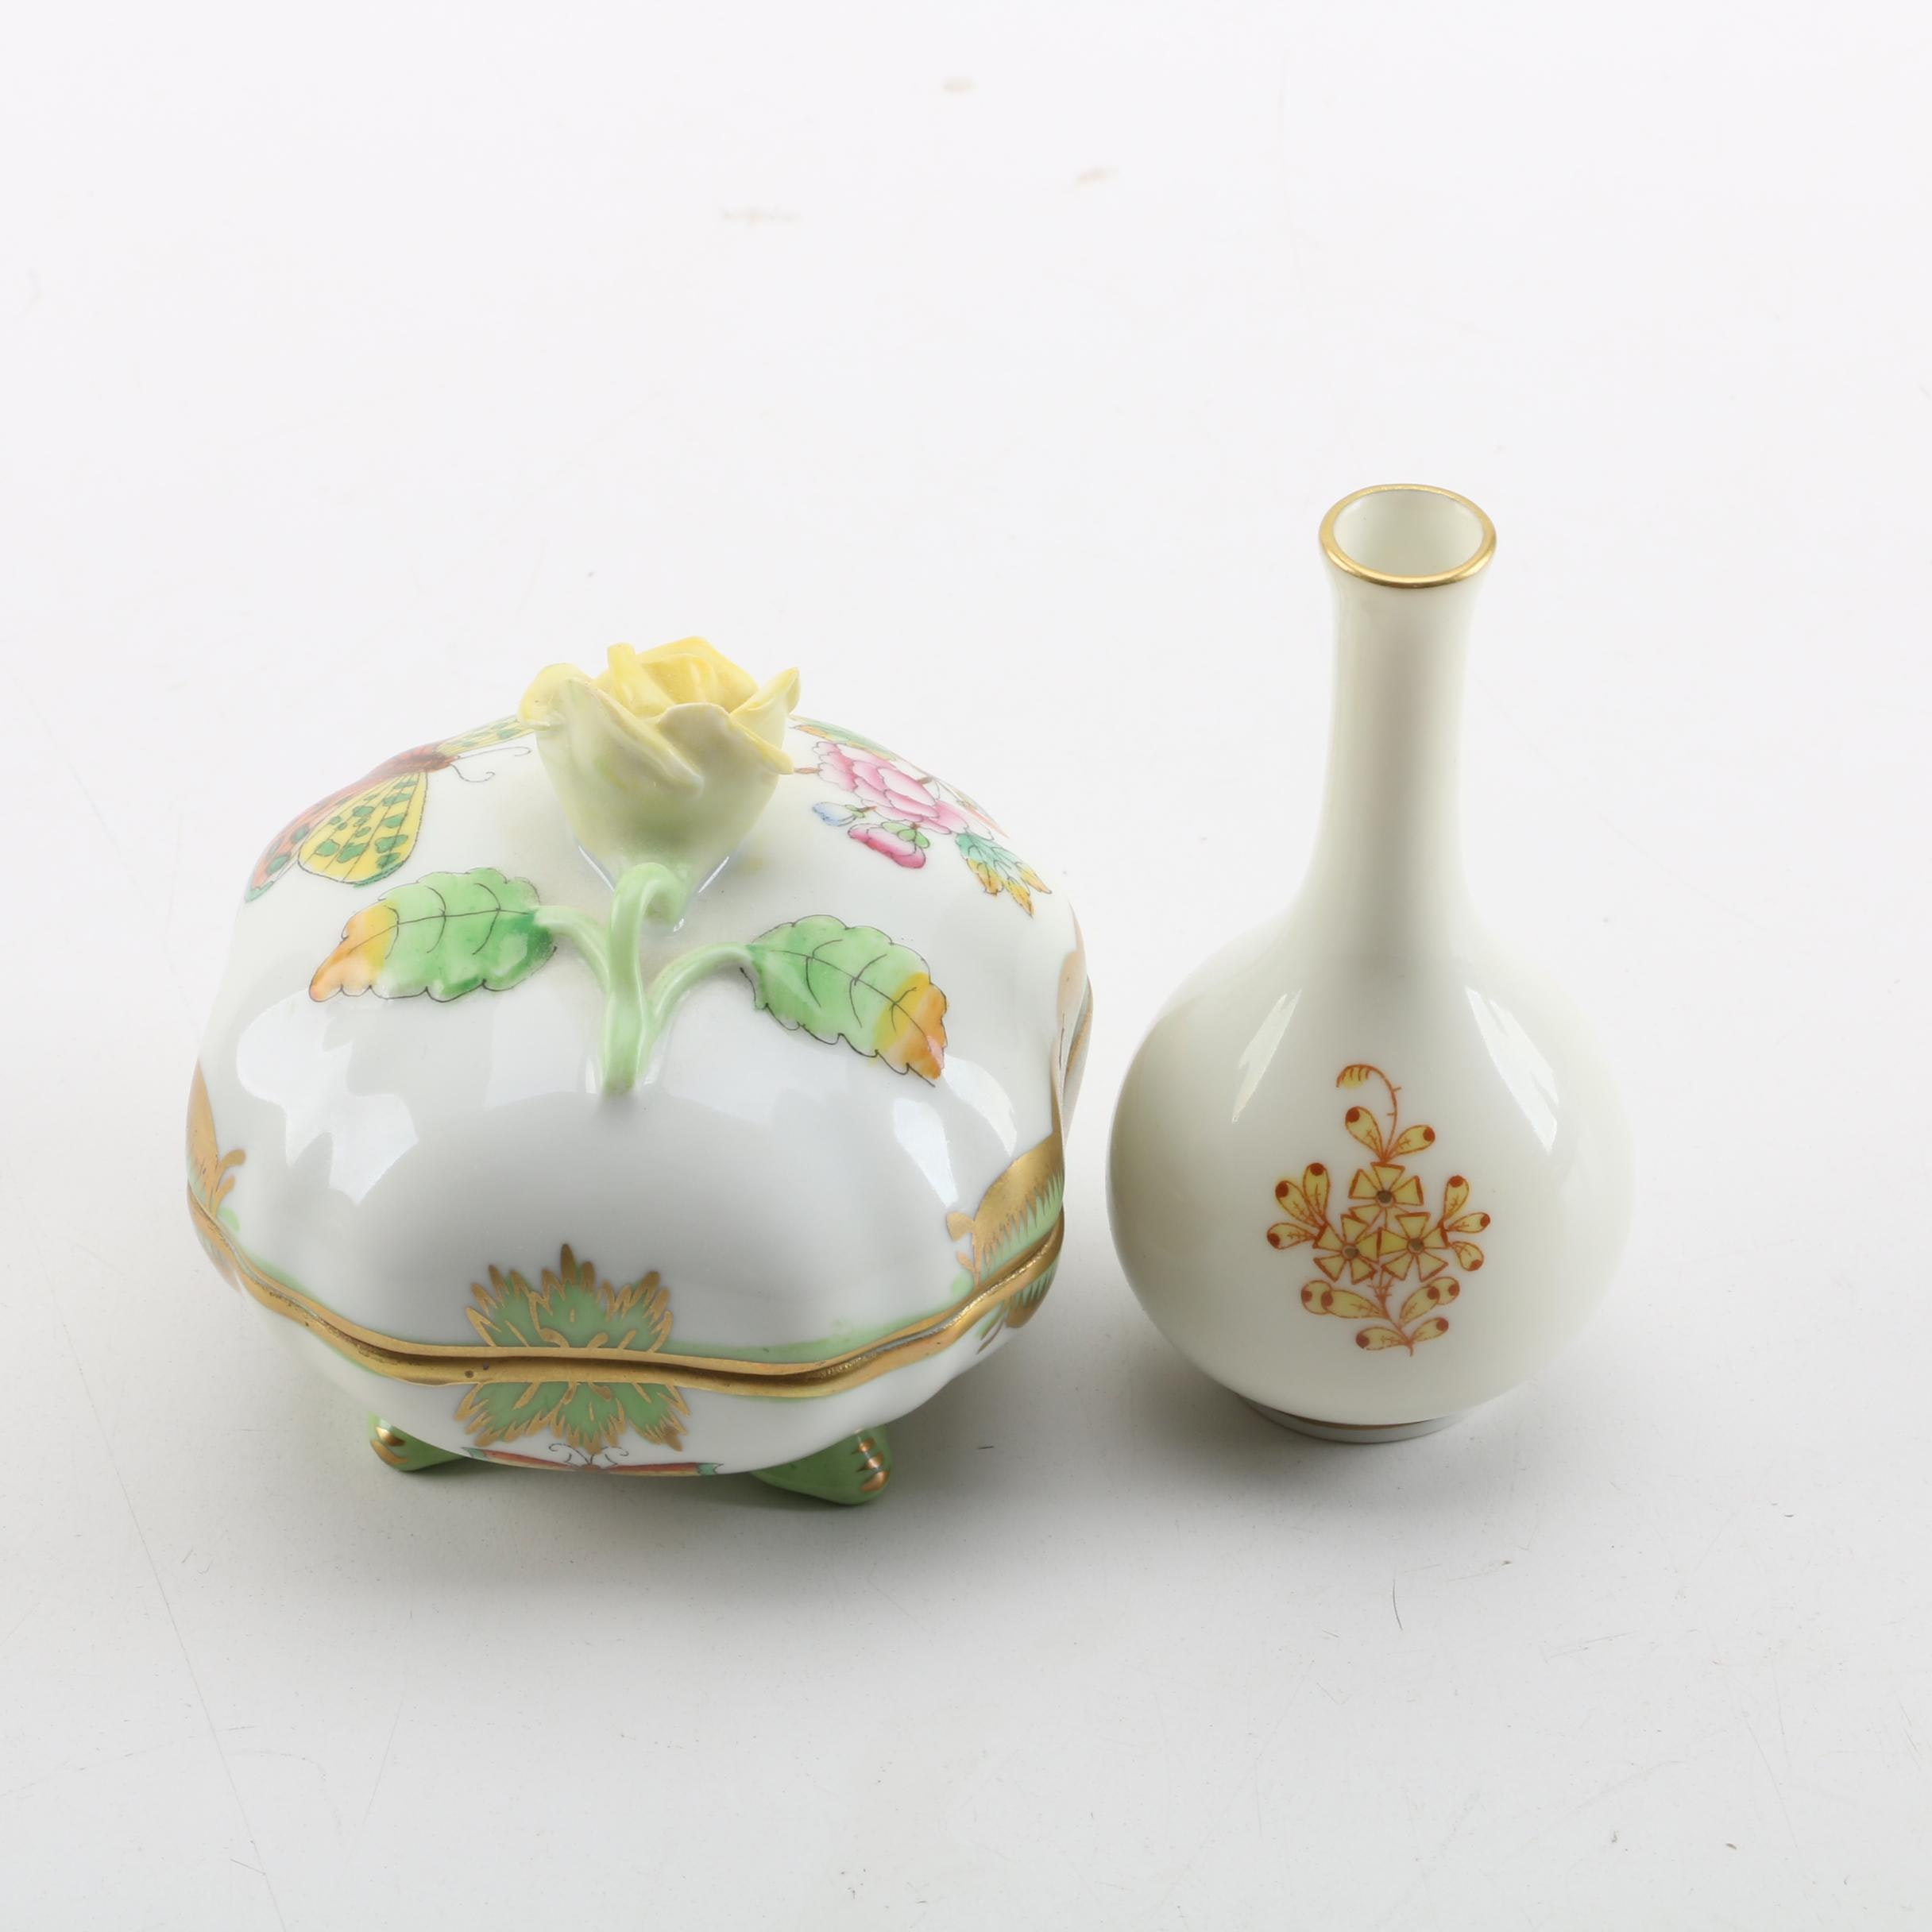 Herend Hungary Floral Motif Trinket Dish and Bud Vase